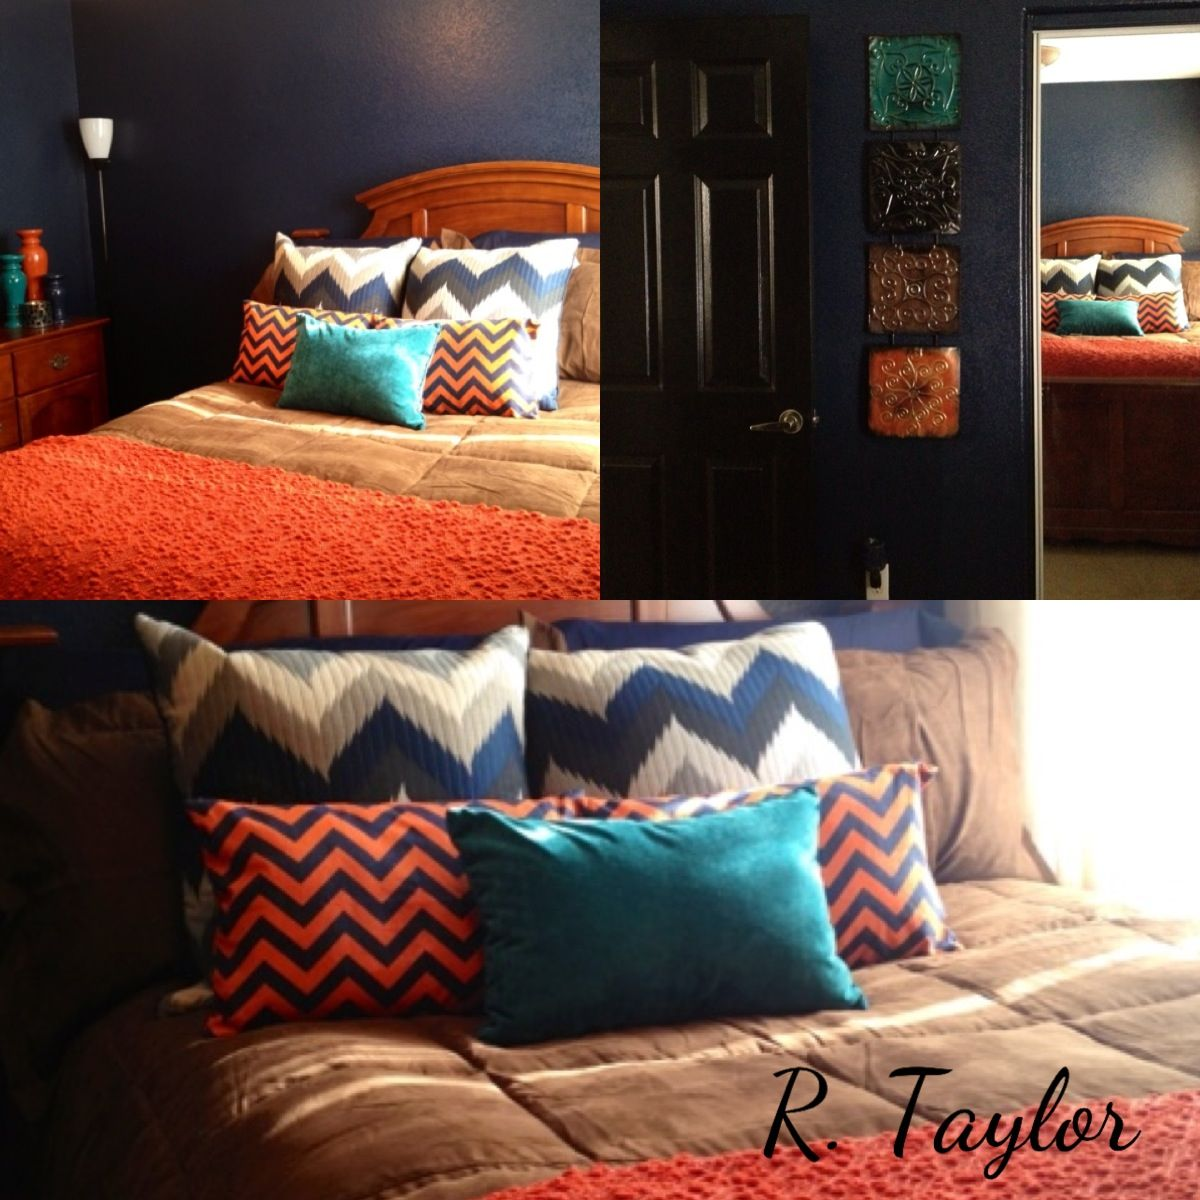 Bahr Orange Rooms With Navy Accent Wall: Navy, Teal And Orange Guest Room For My Chicago Visitors